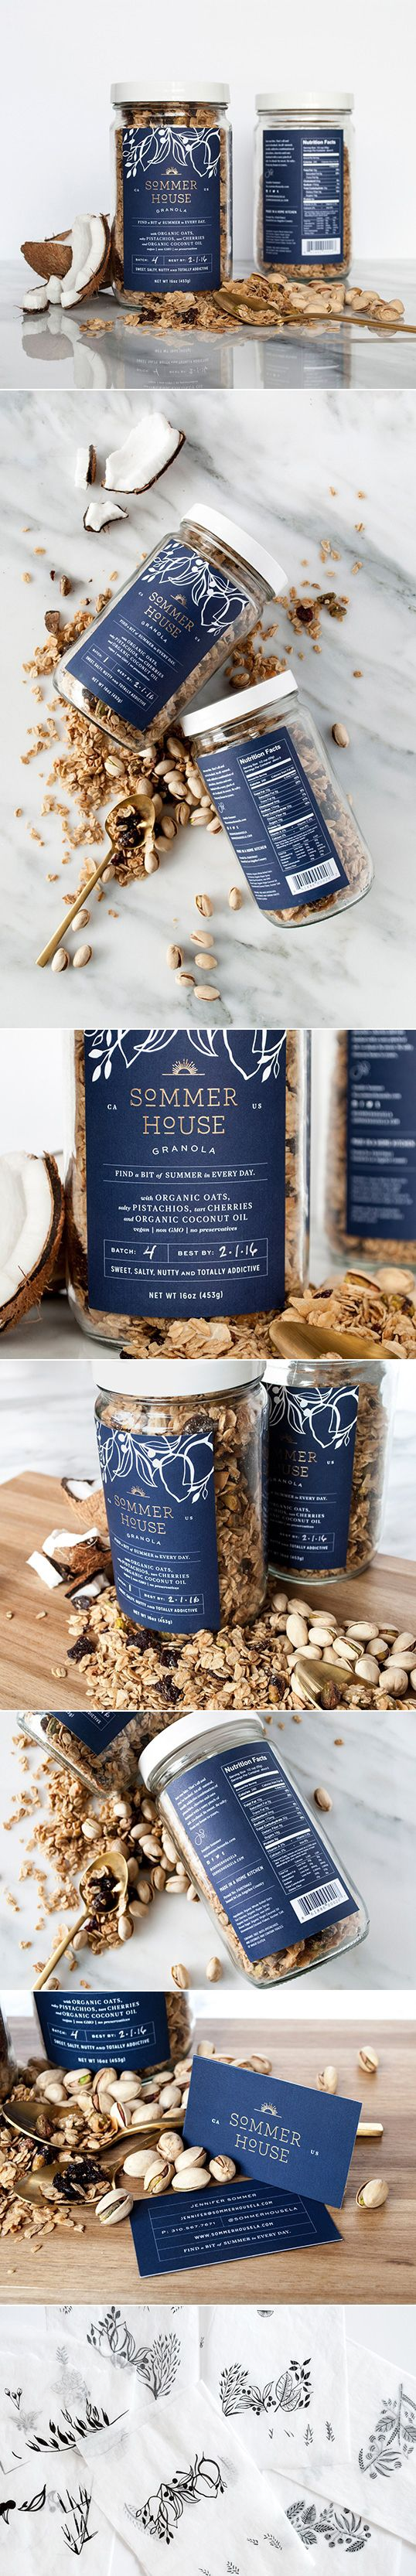 Lovely Package - Sommer House